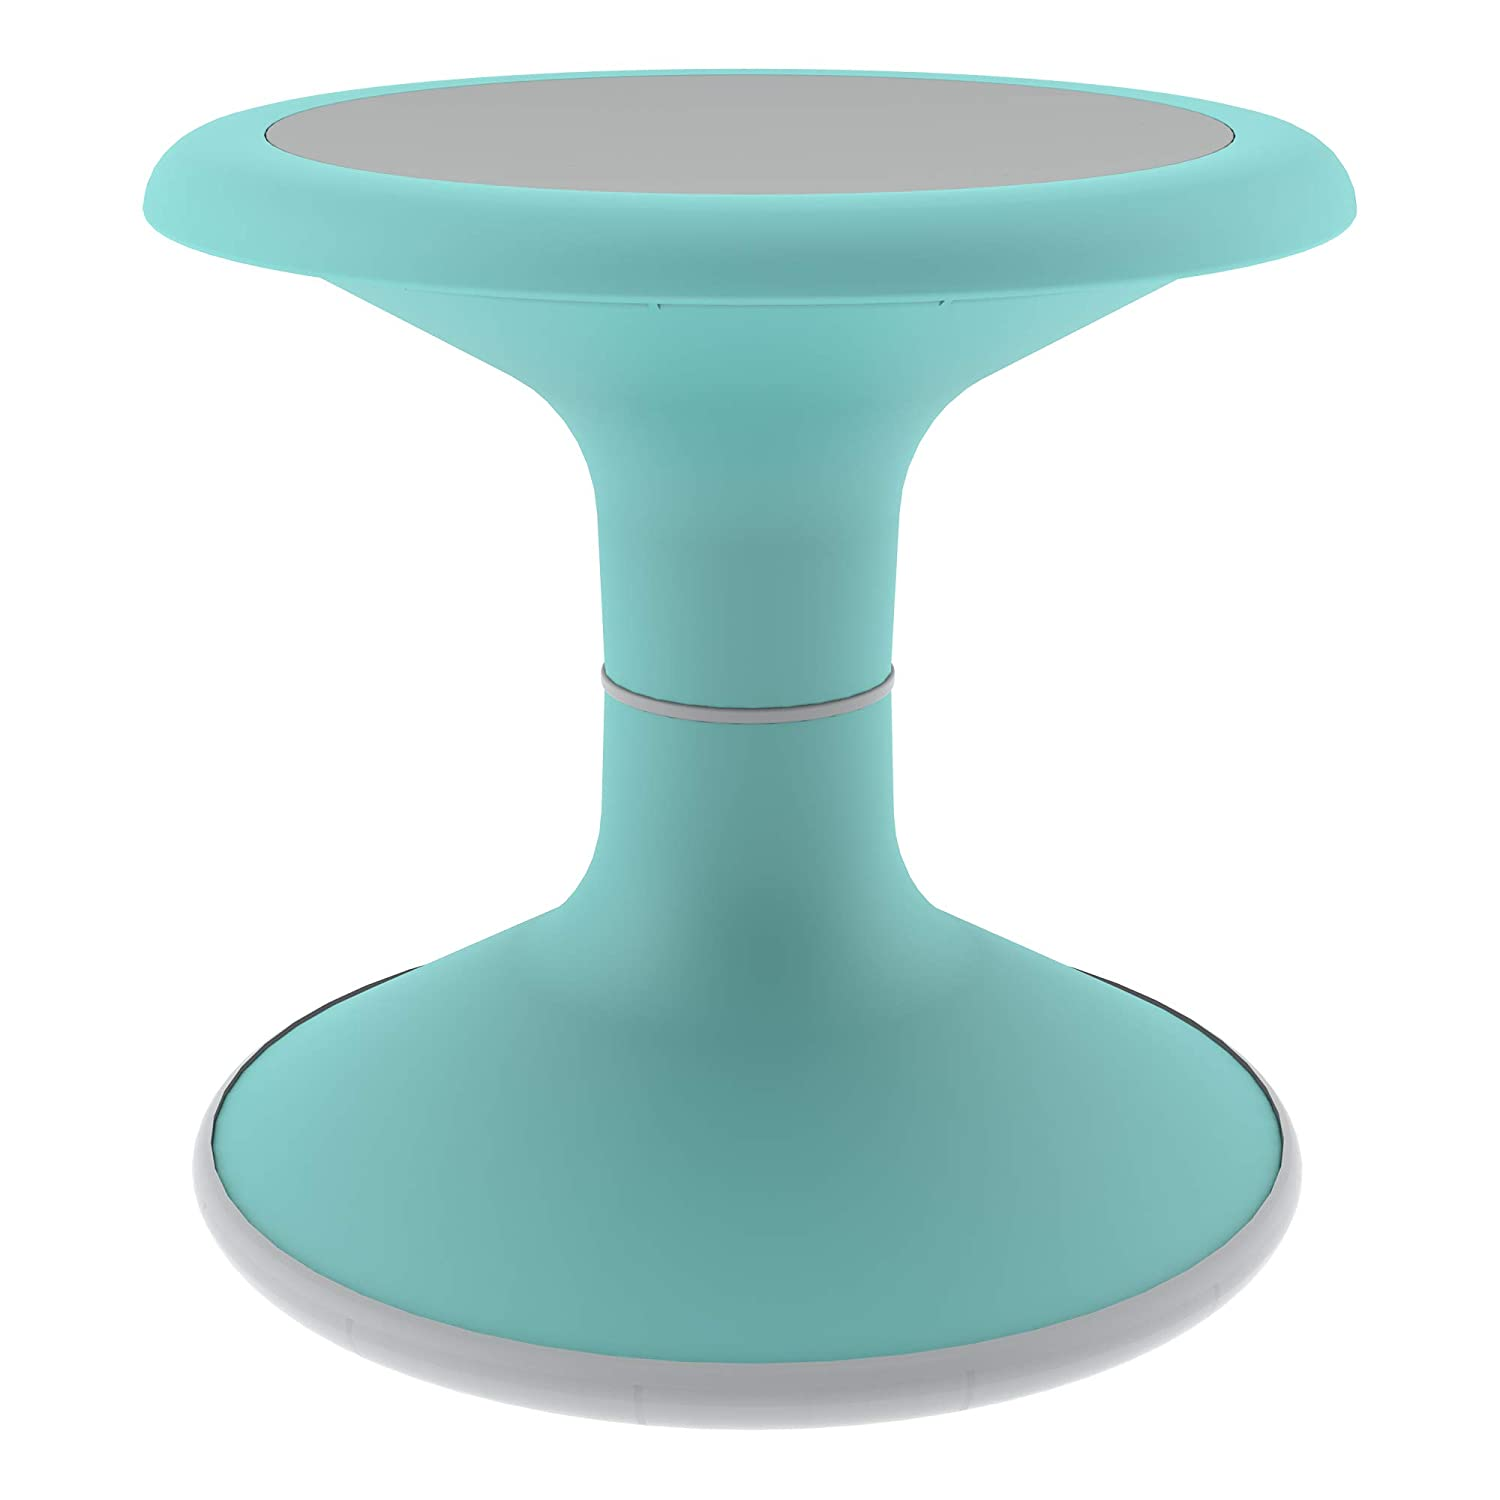 """Sprogs Kids Active Motion Stool - Flexible Seating for School Classroom, Office or Home - 12"""" Seat Height - Turquoise (SPG-NUS3000-TR-SO)"""